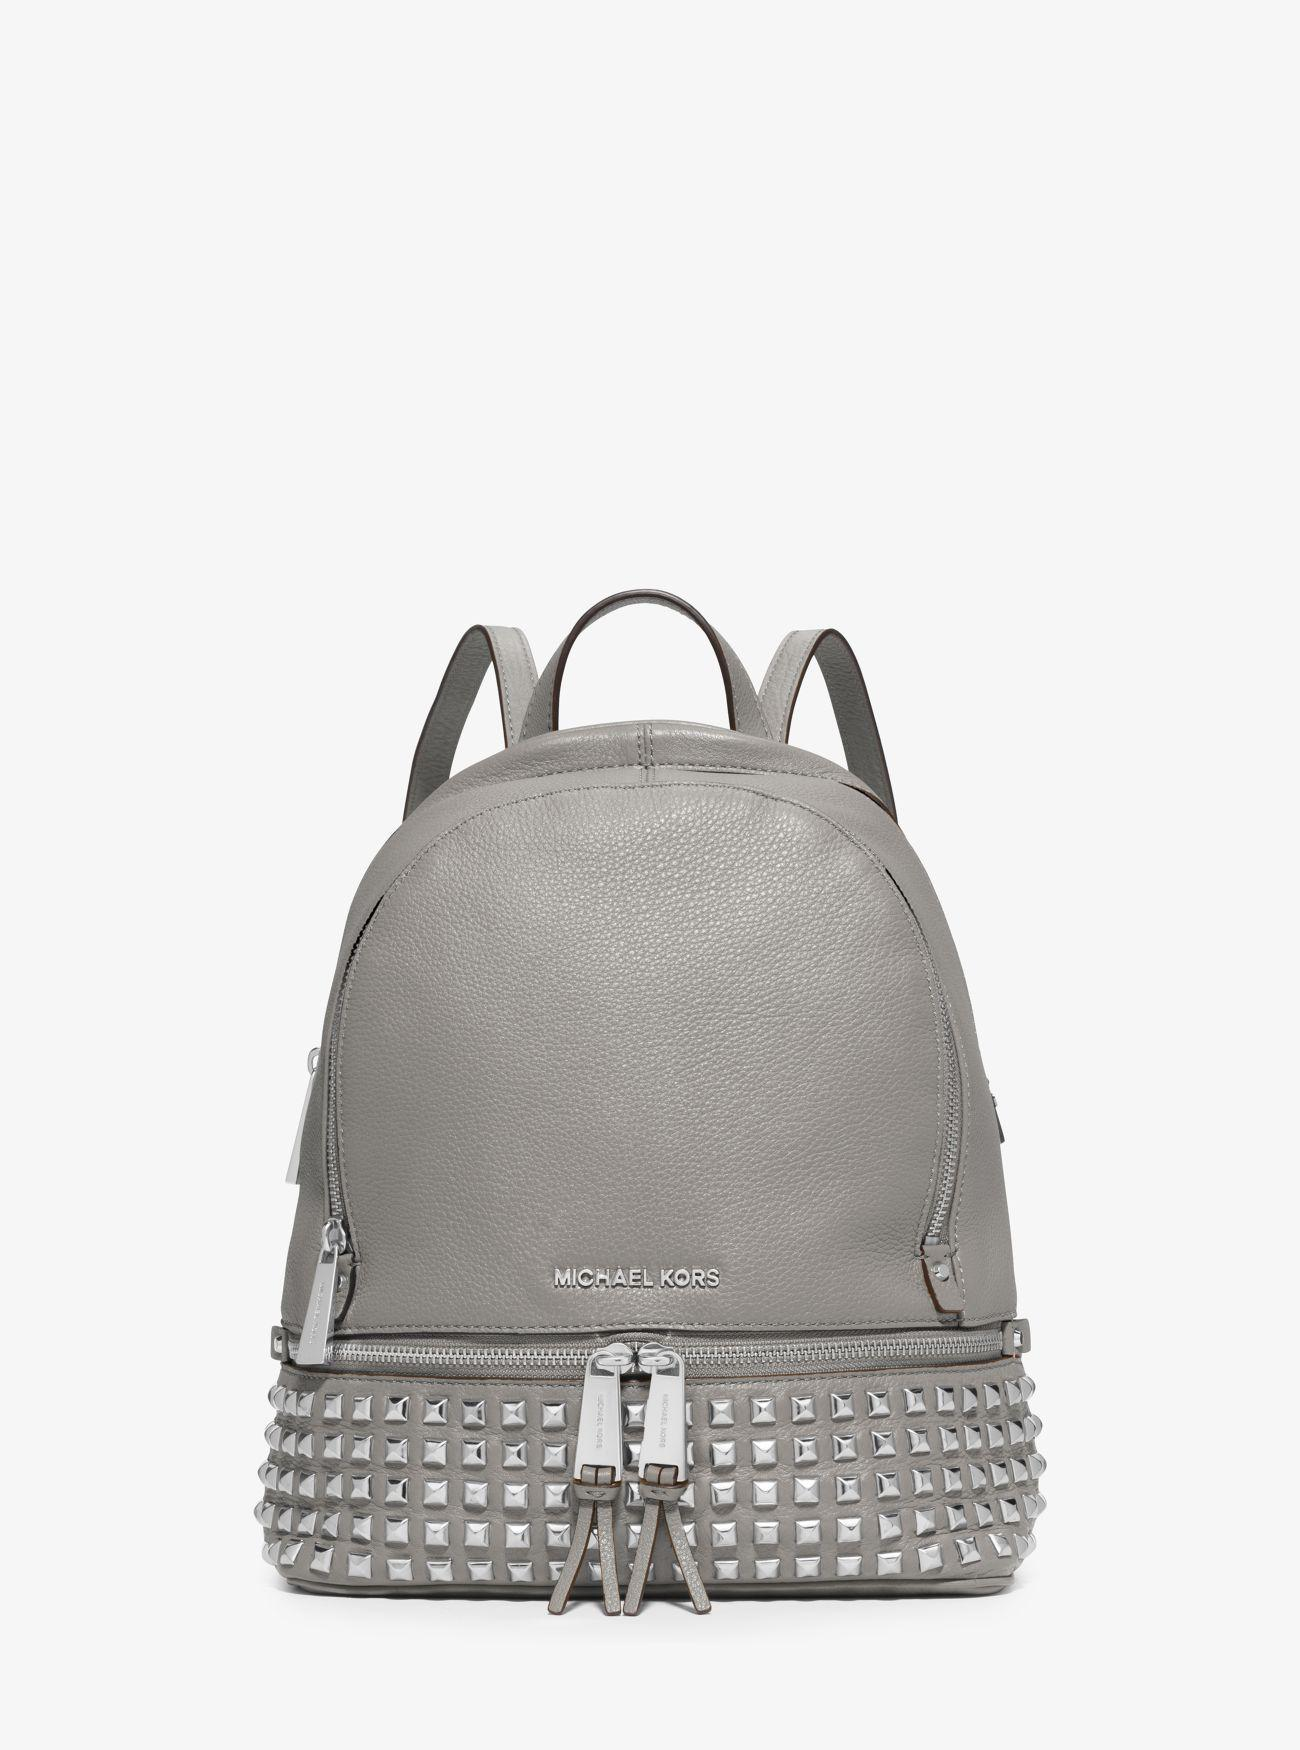 ac317ec99 Tap to visit site. Michael Kors - White Rhea Medium Studded Pebbled Leather  Backpack ...